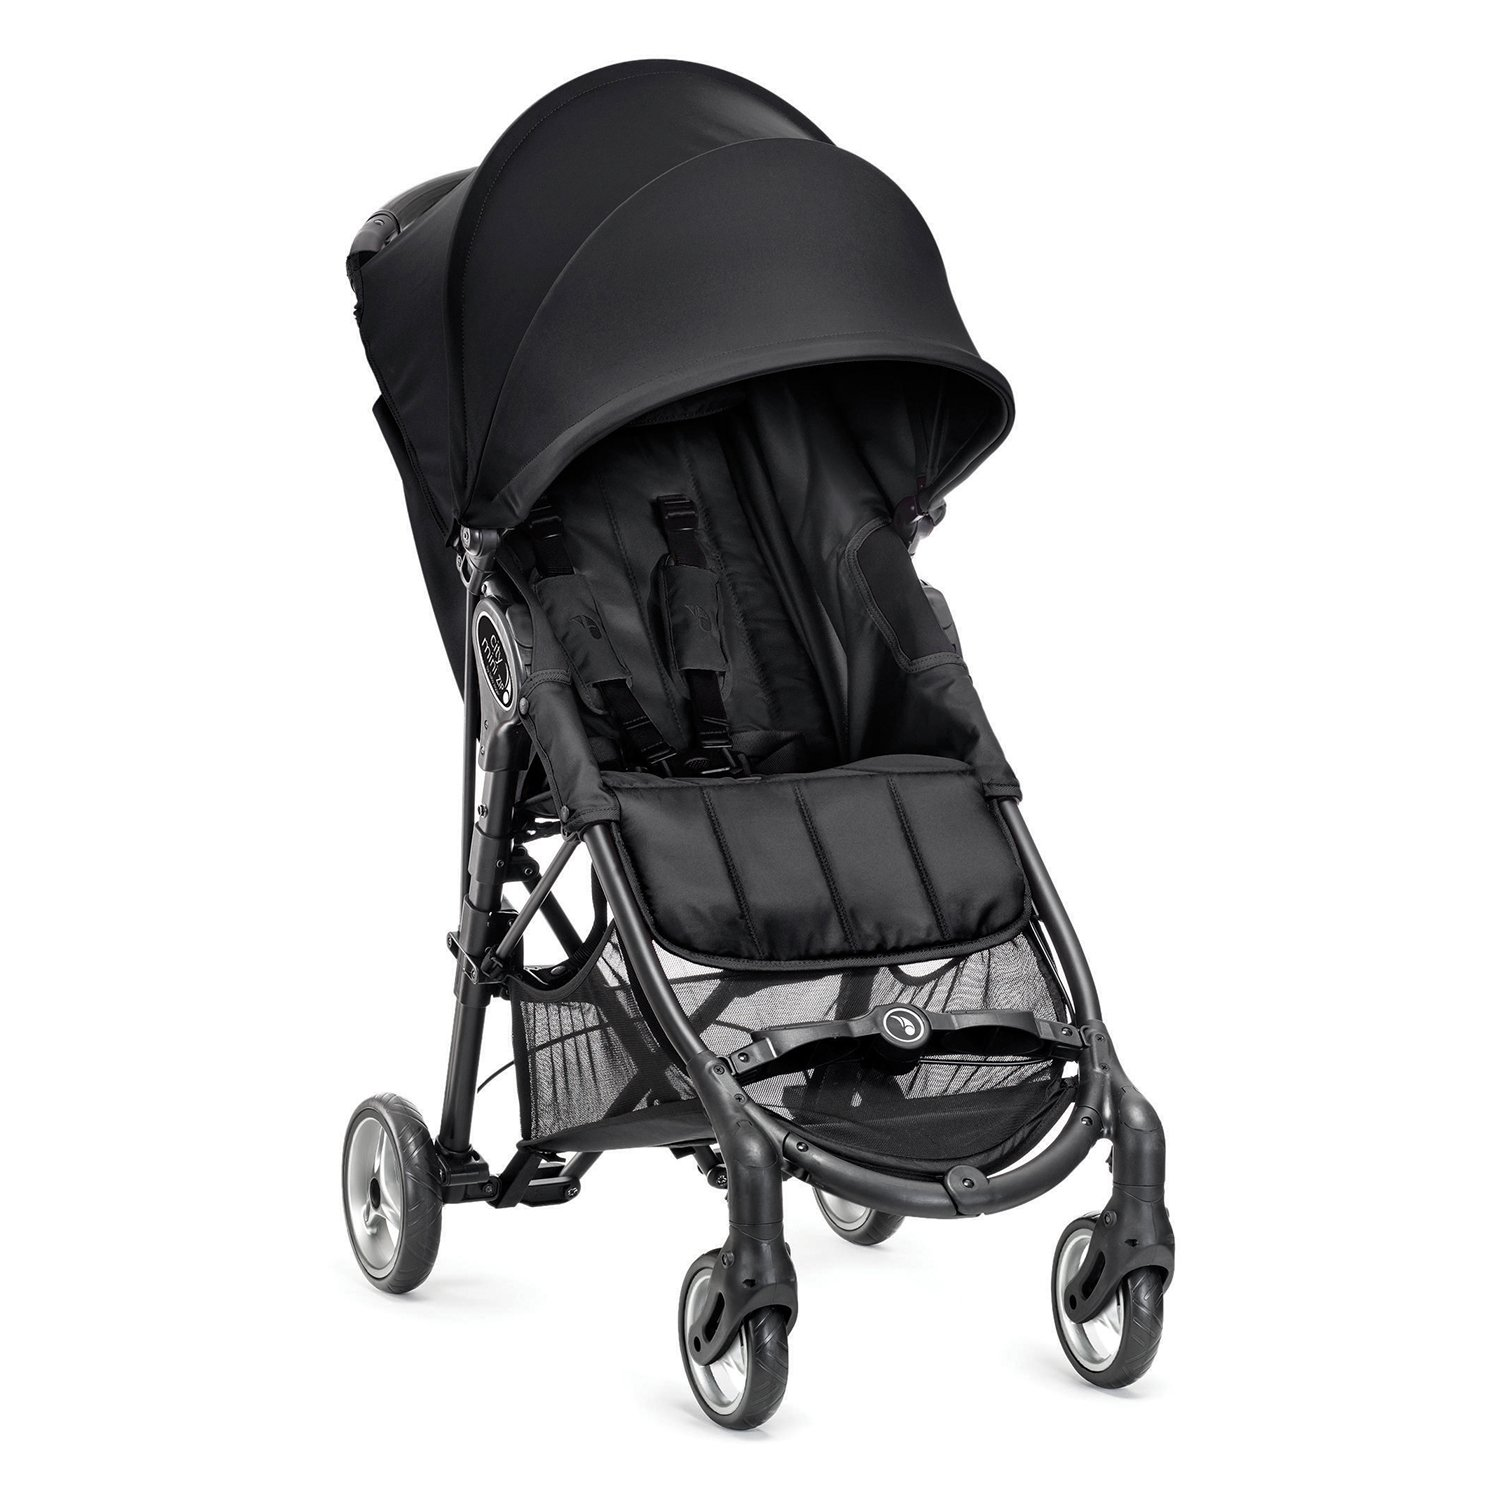 Baby Jogger City Mini ZIP Stroller In Black, BJ24410